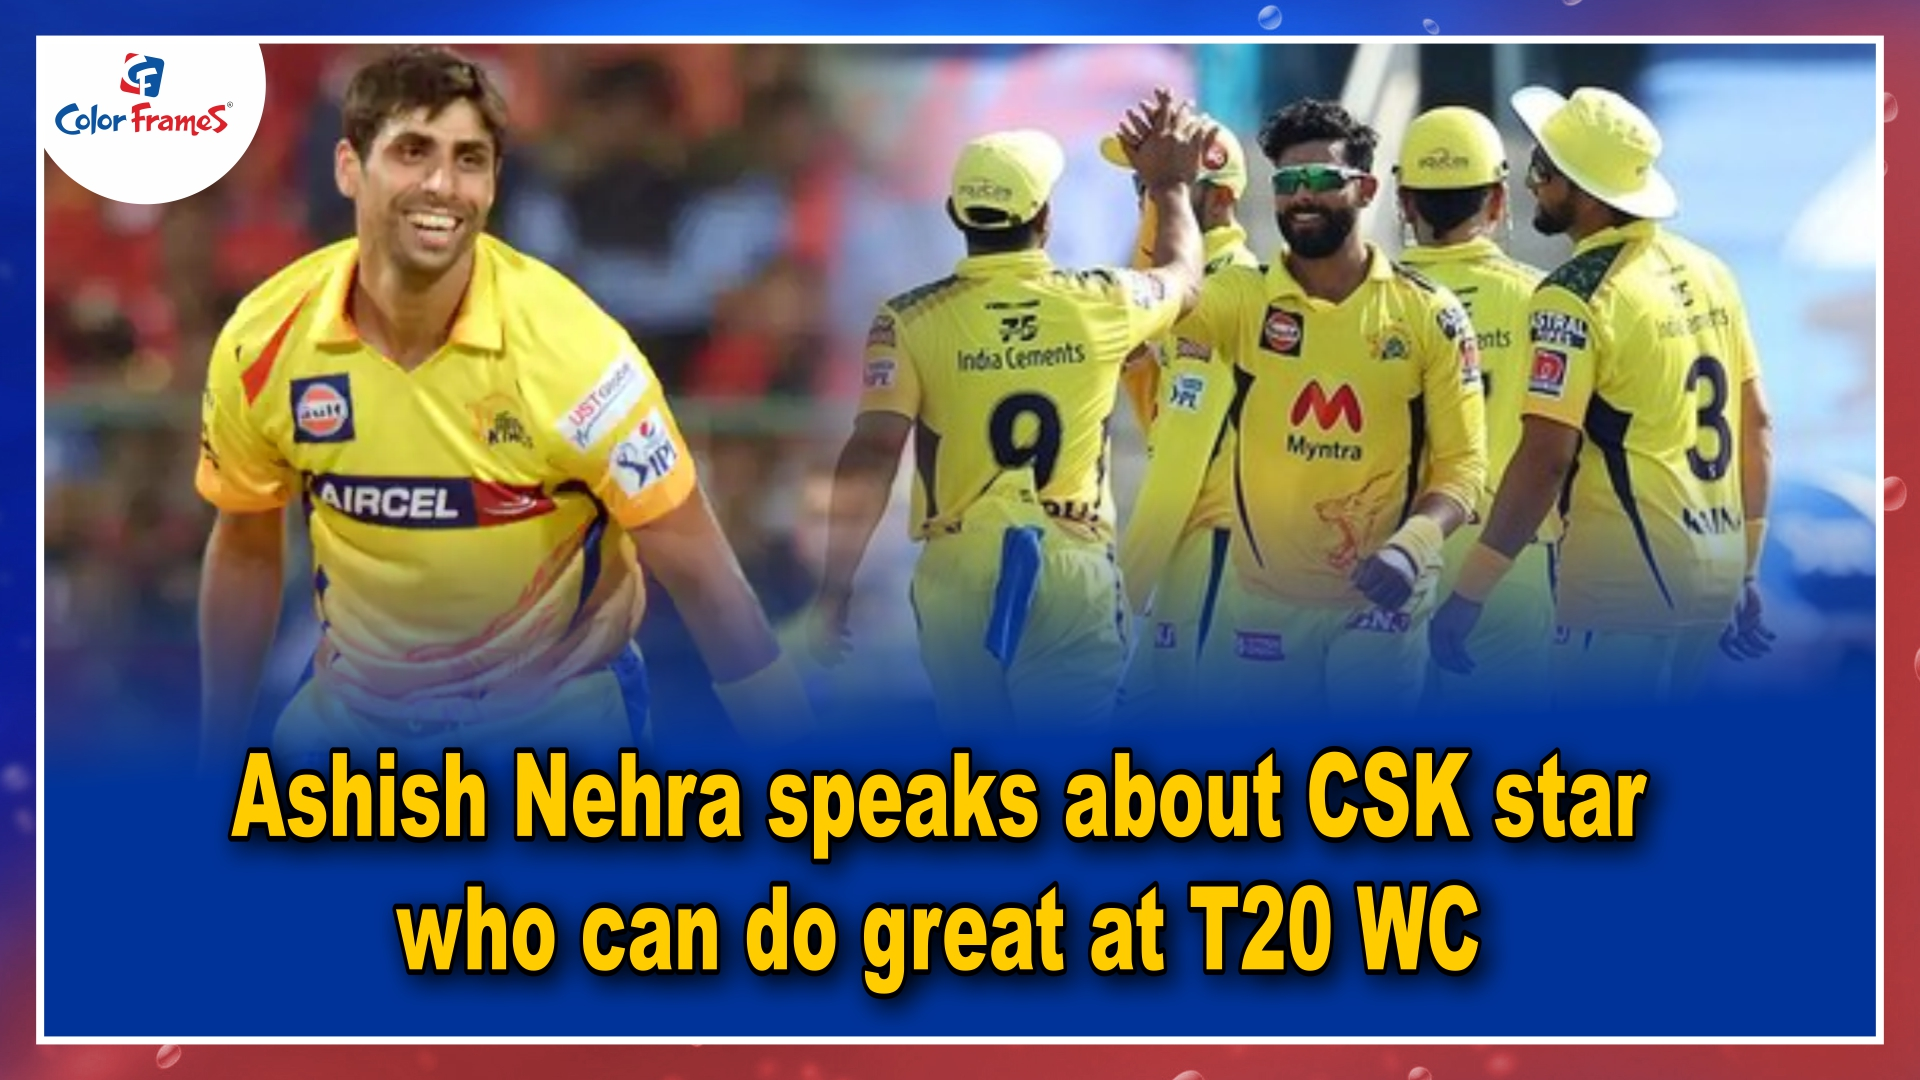 Ashish Nehra speaks about CSK star who can do great at T20 WC